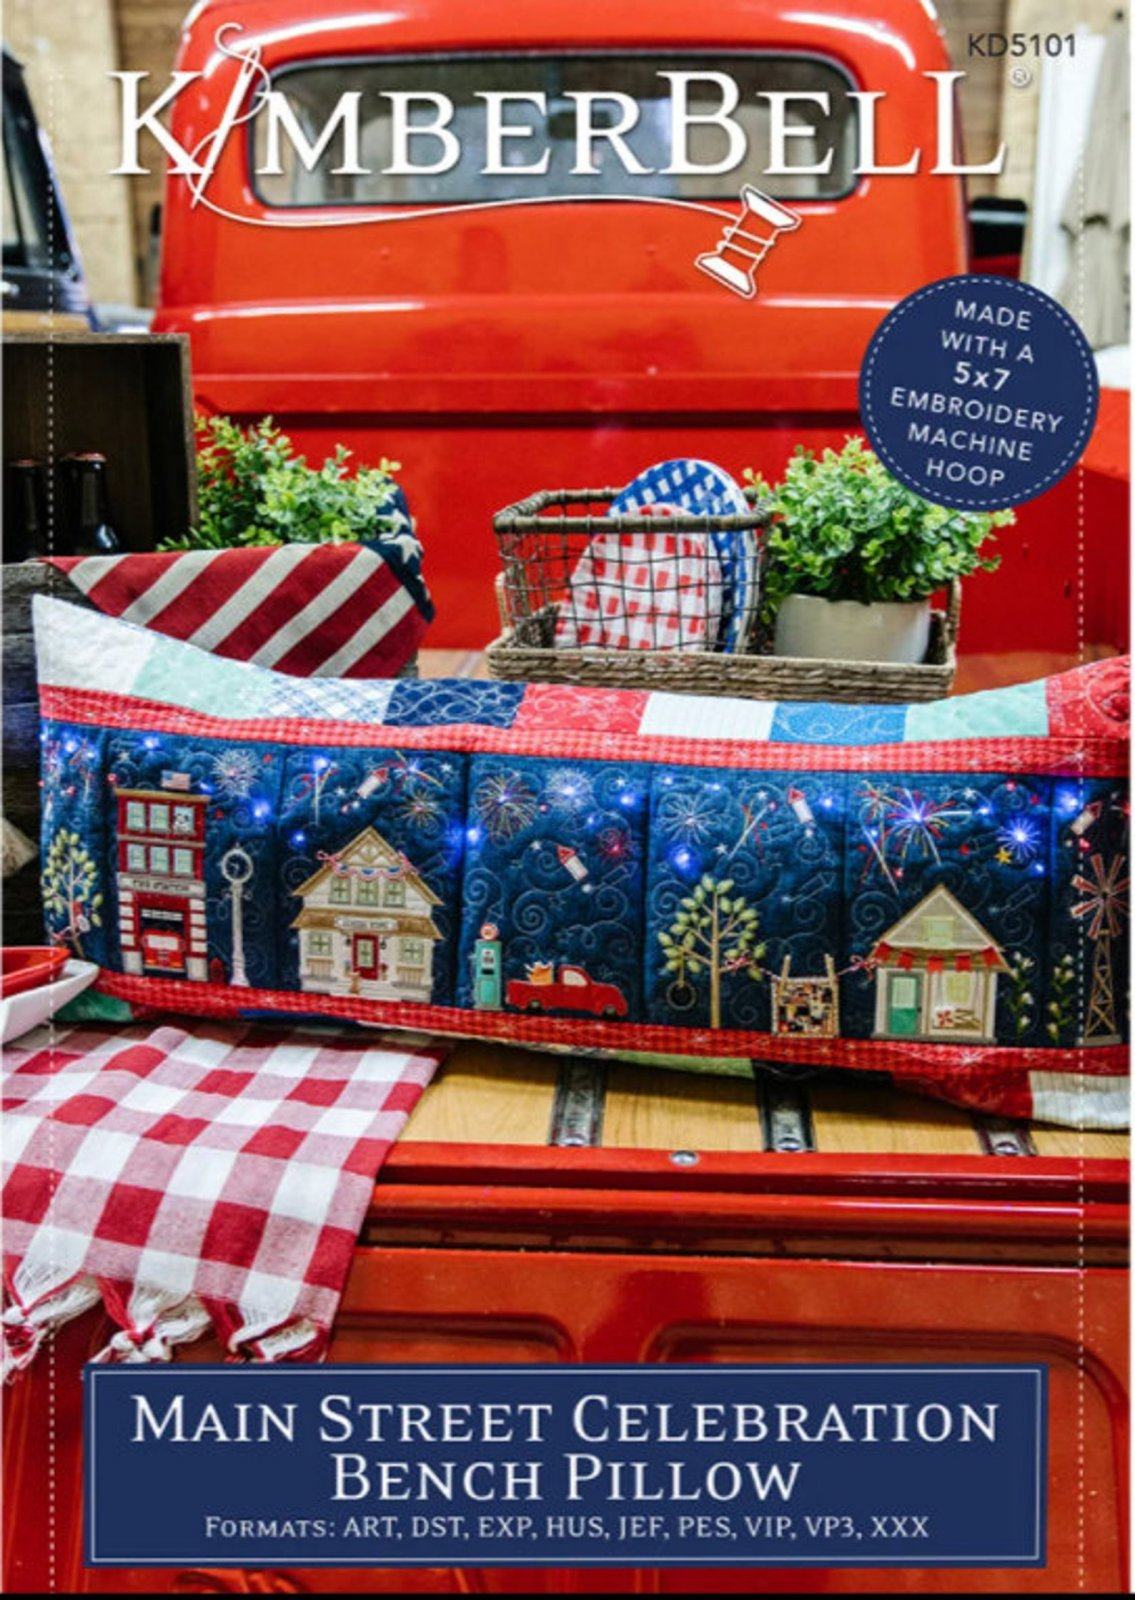 Main Street Celebration Bench Pillow machine embroidery CD by Kimberbell KD5101